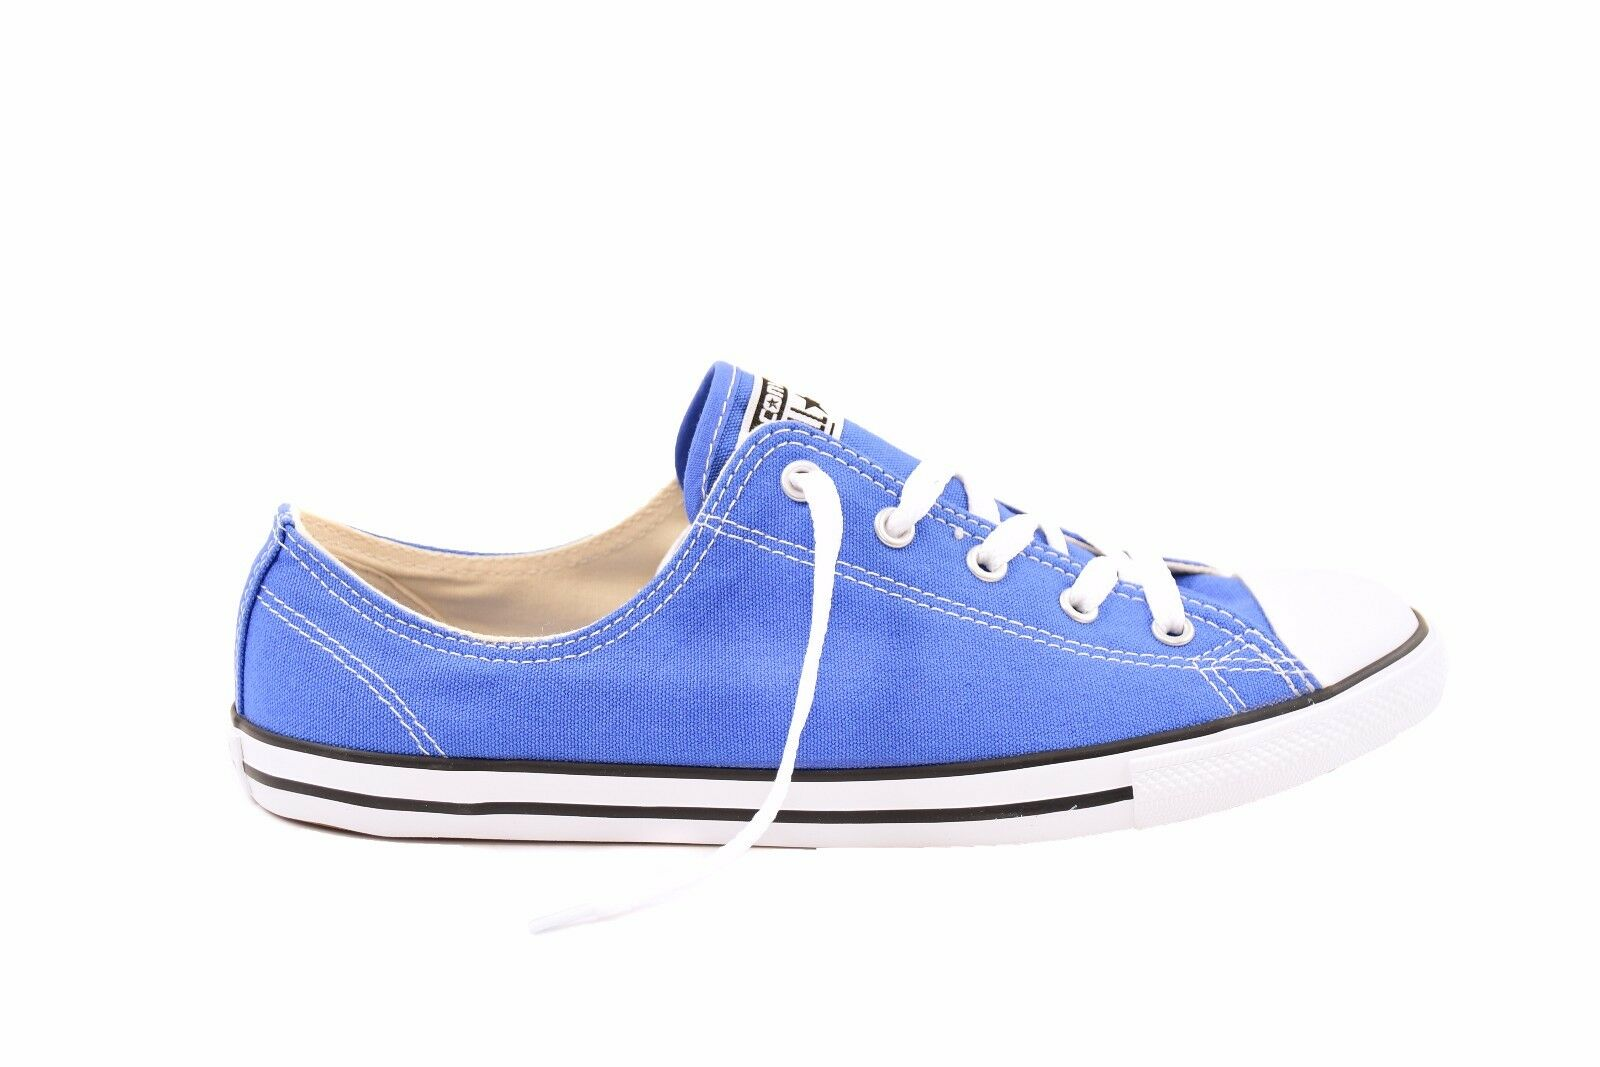 Converse Women CTAS Dainty Canvas color OX 553373C Sneakers bluee   BCF79